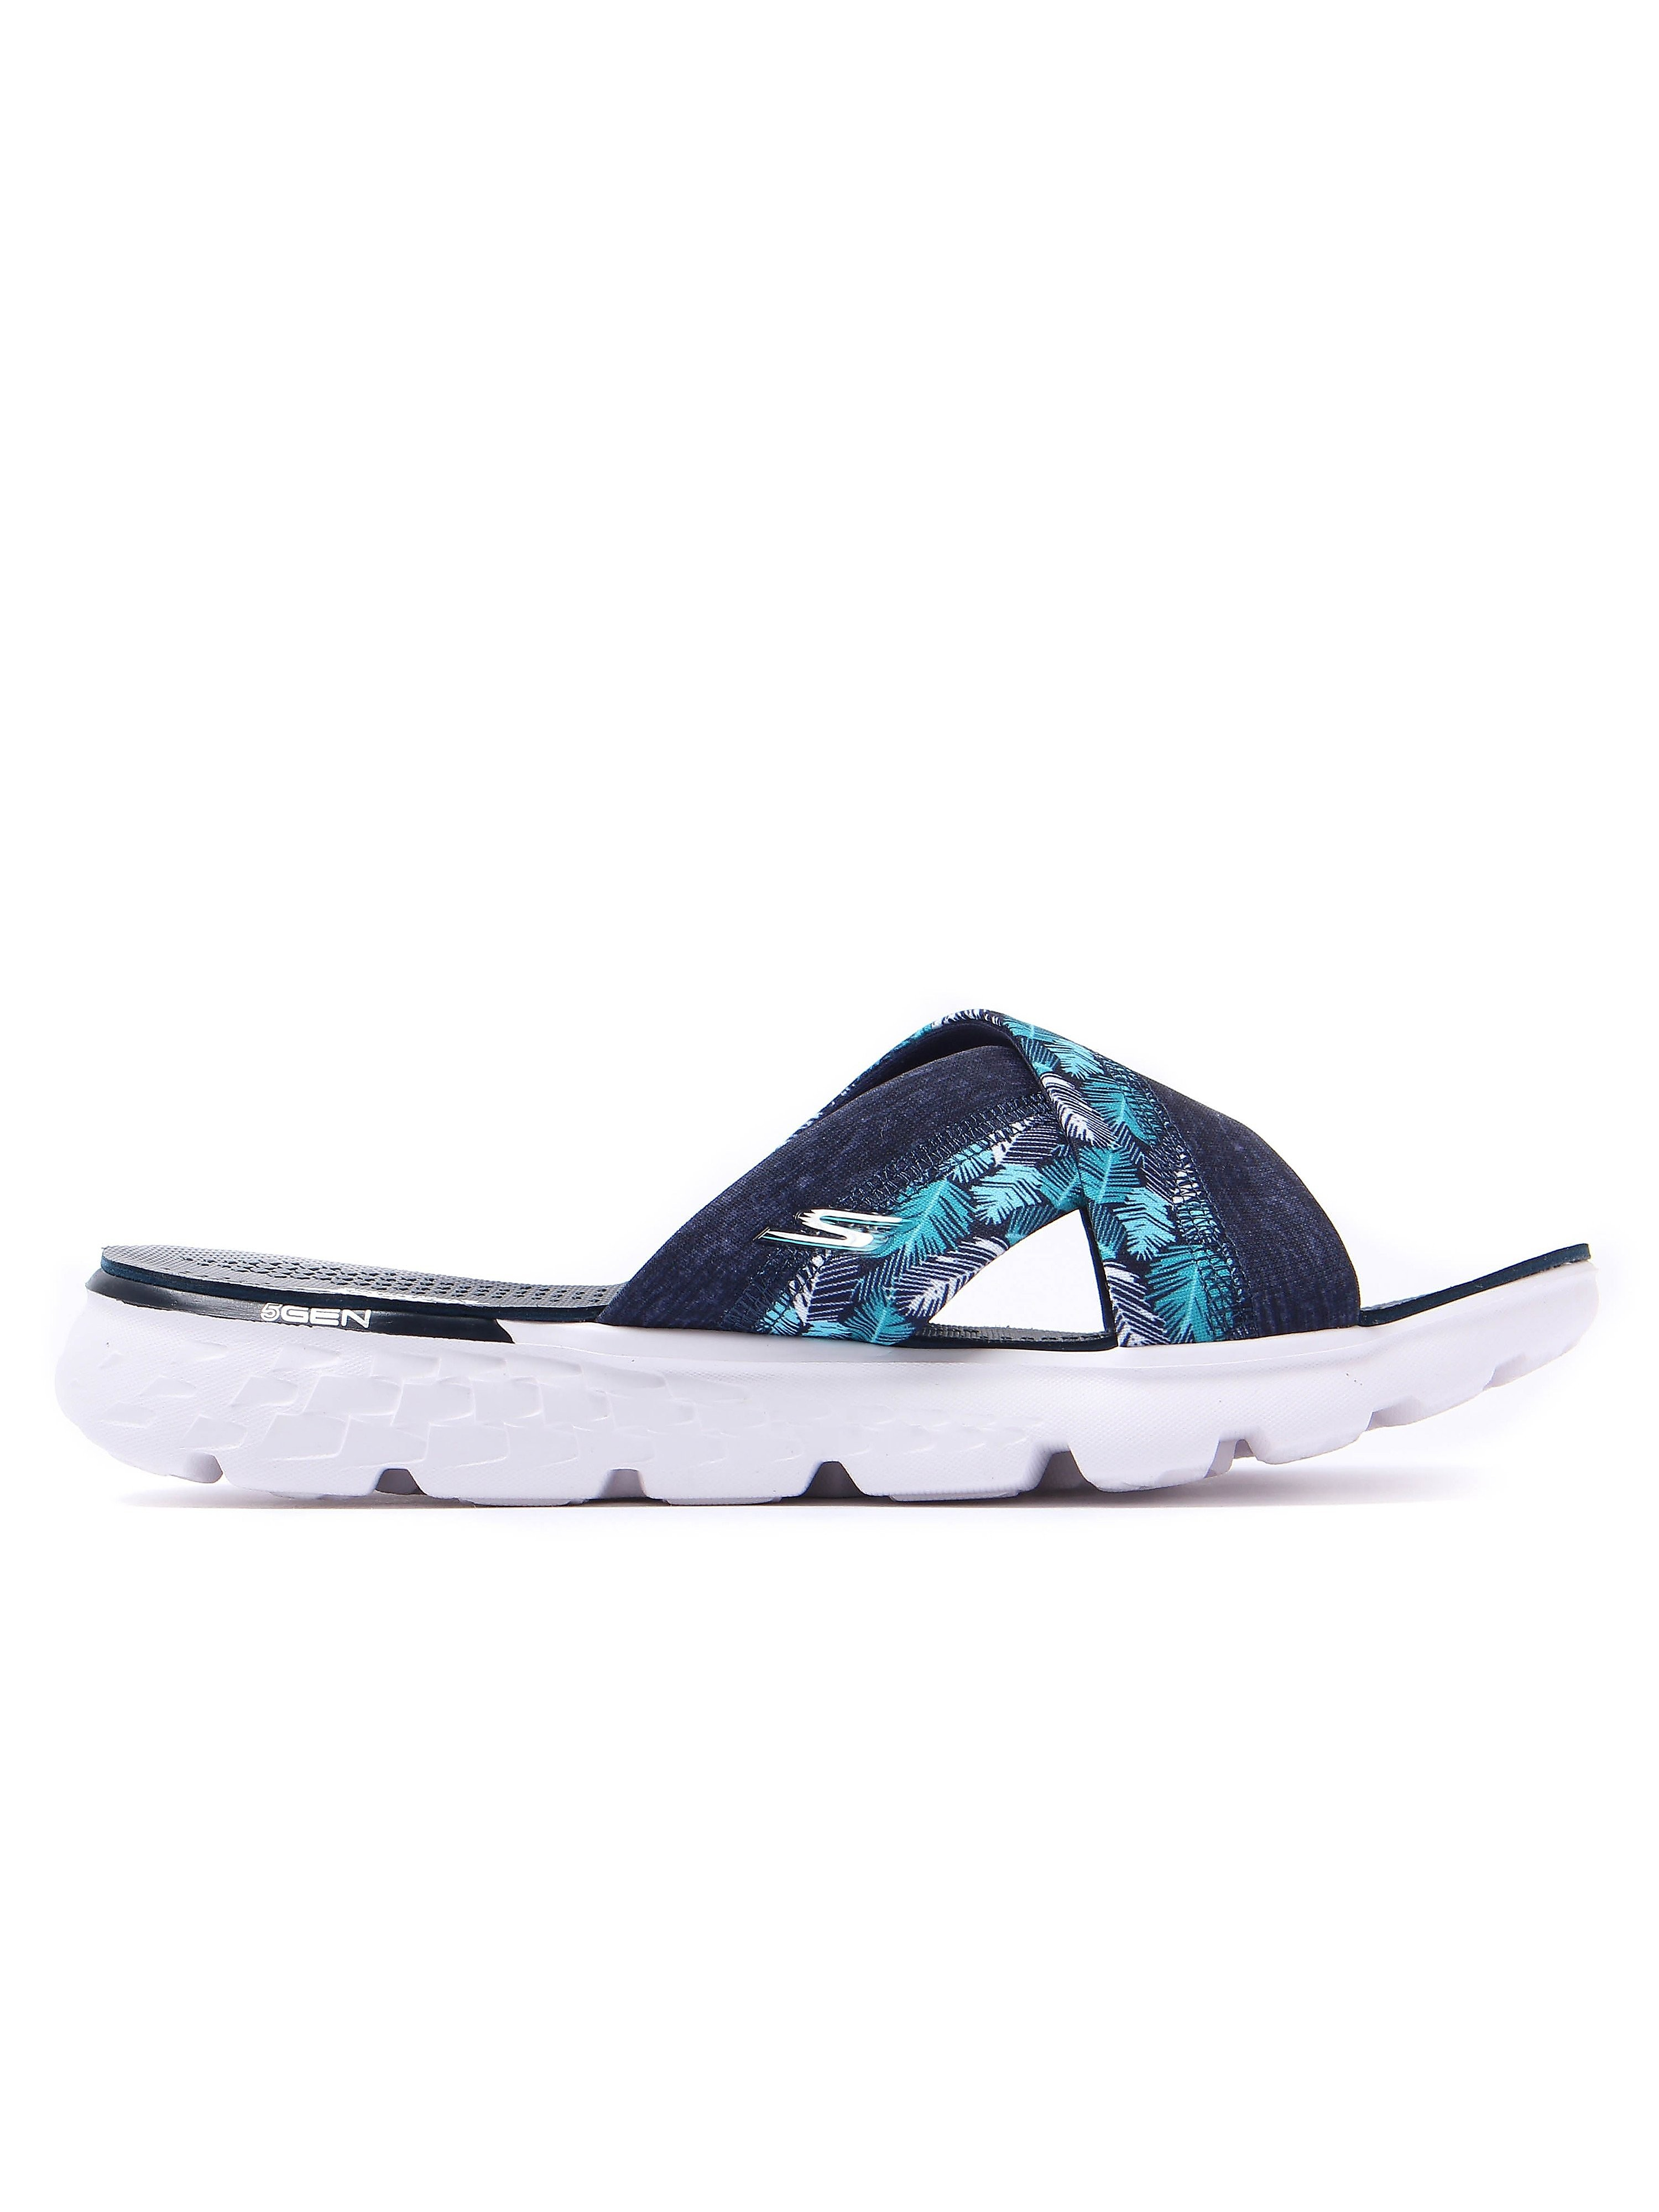 Skechers Women's On-The-Go 400 Tropical Print Slip-On Sandals - Navy